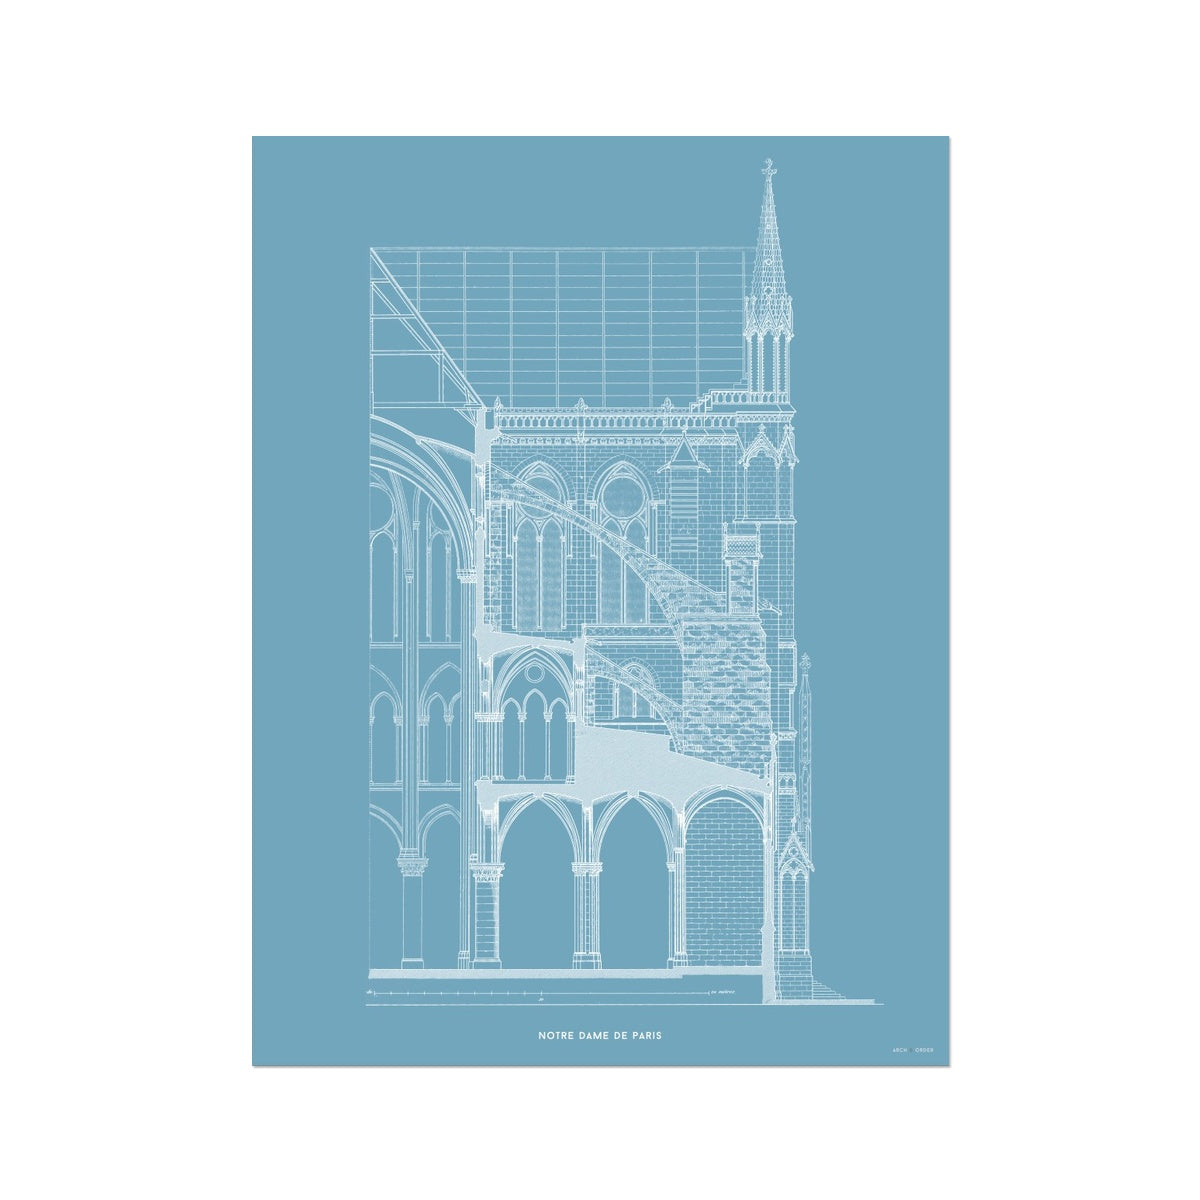 Notre Dame de Paris - Buttress Cross Section - Blue -  Etching Paper Print